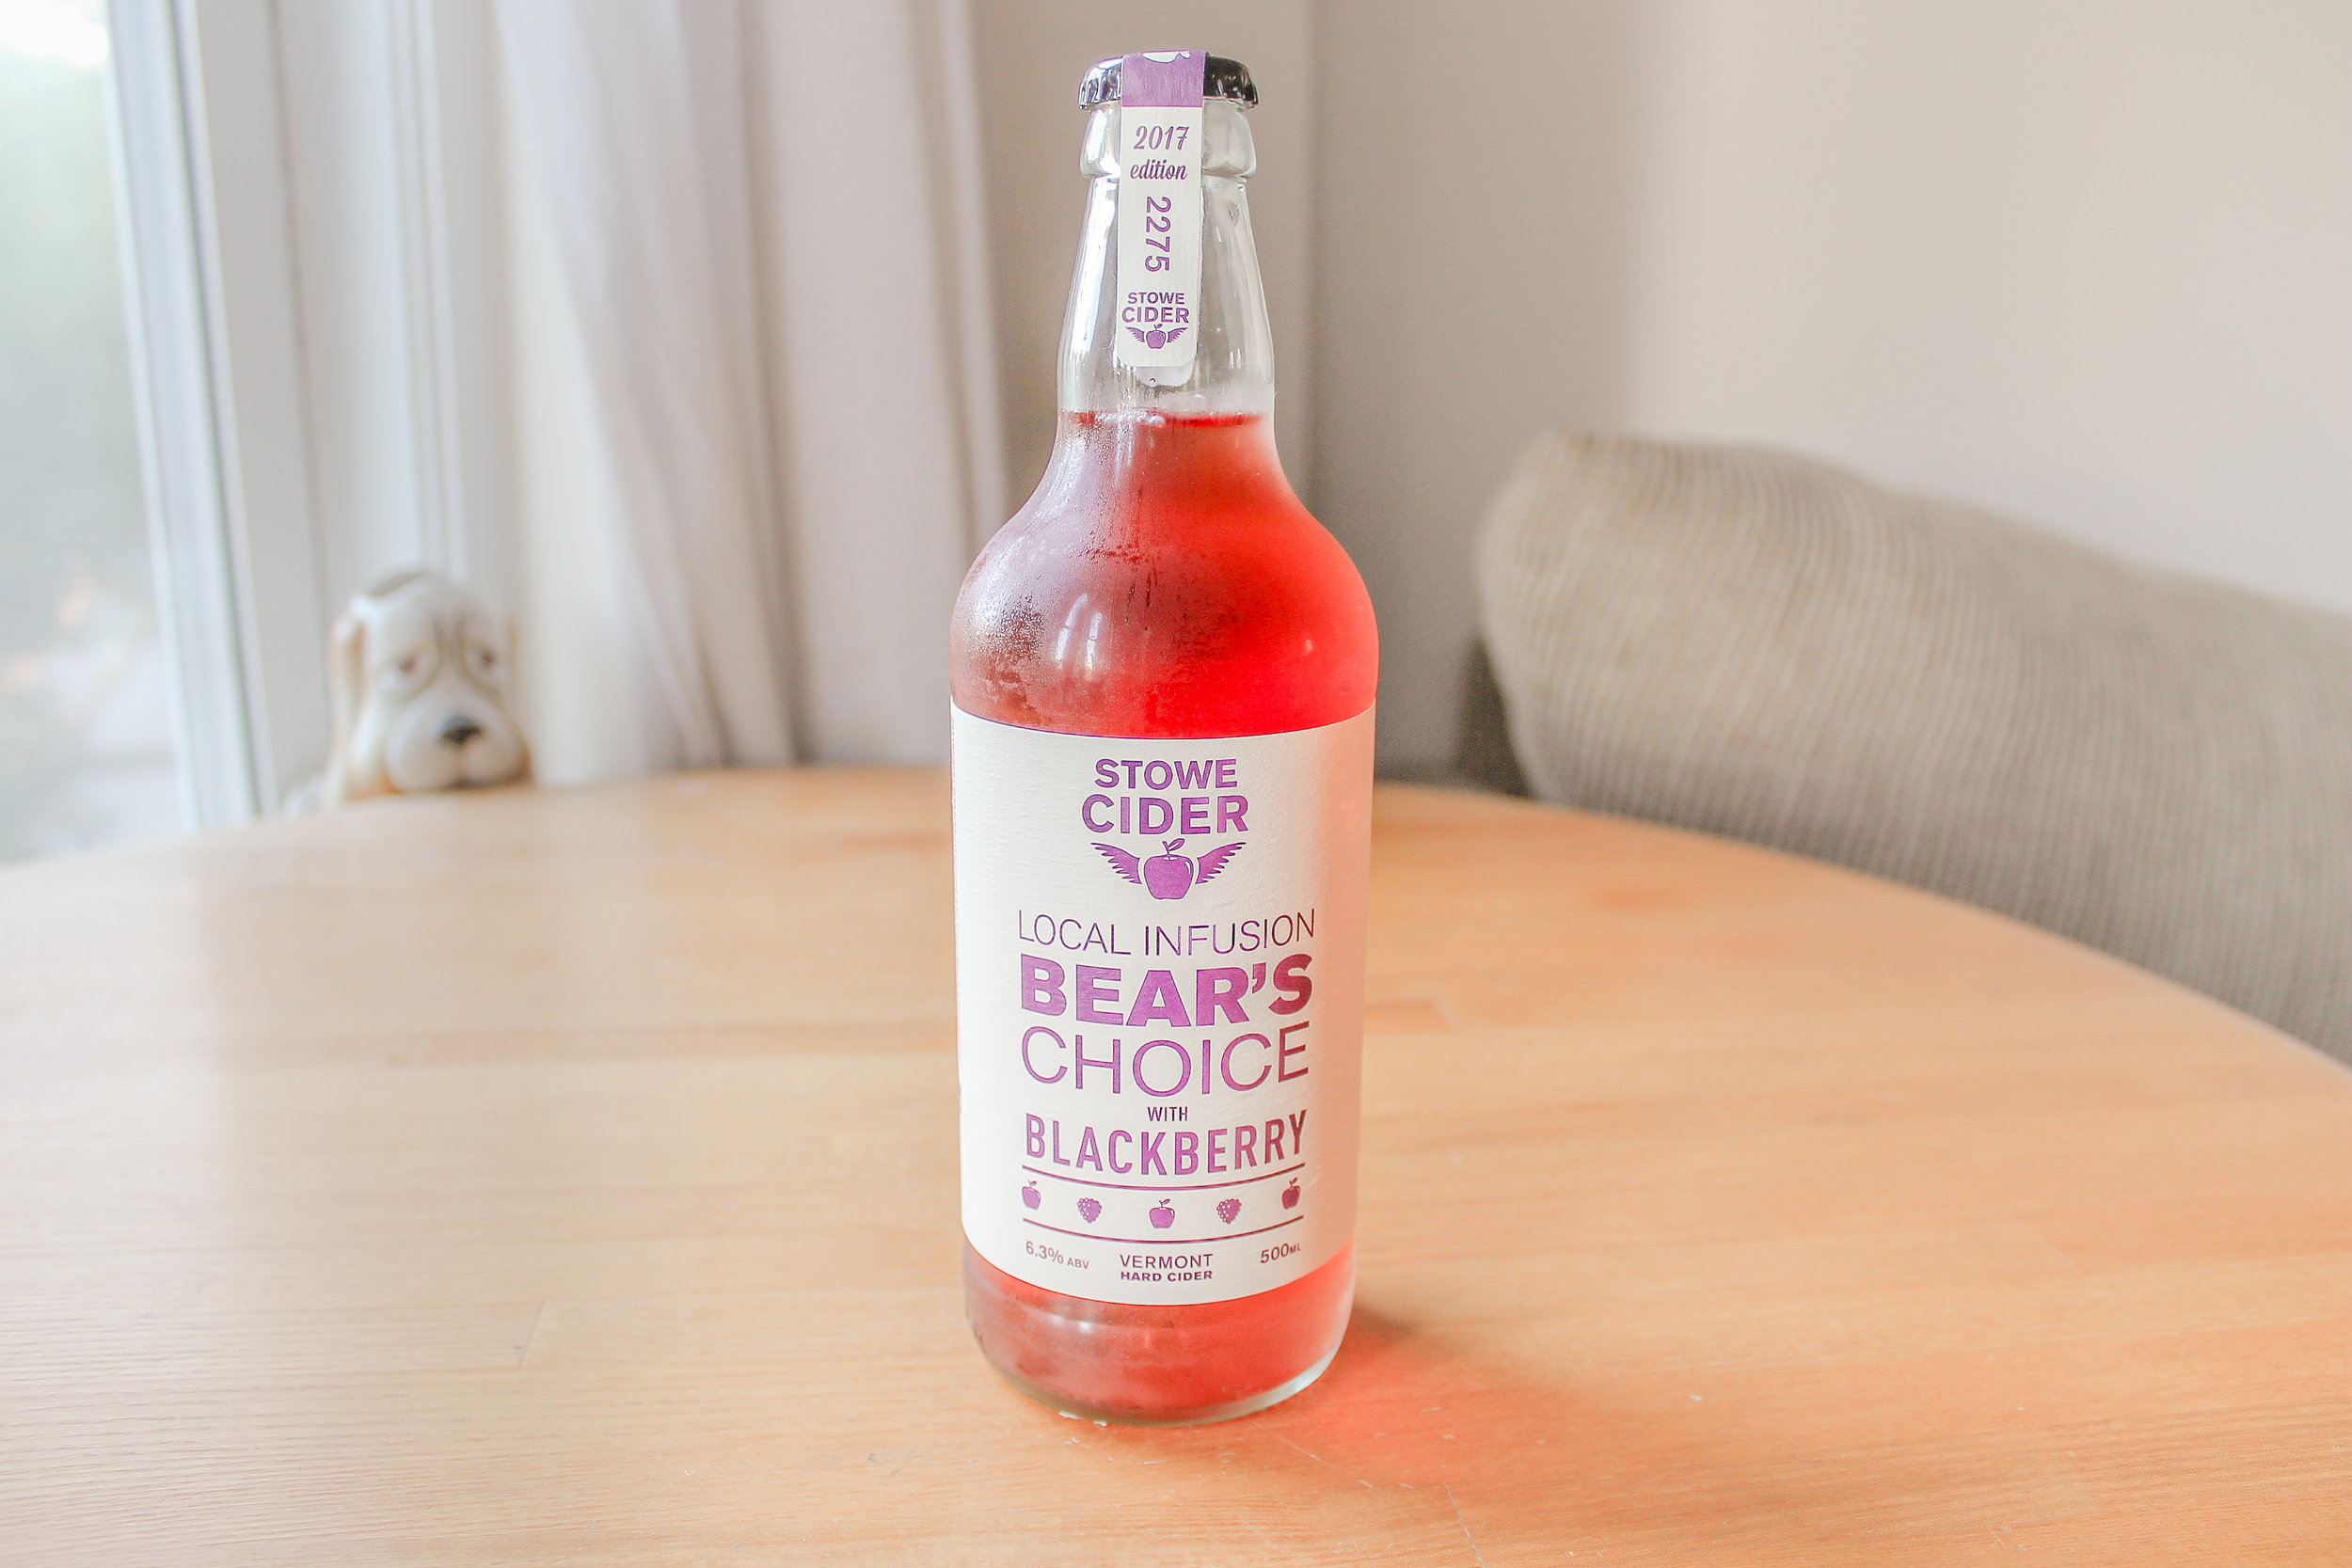 Stowe Cider: Bear's Choice with Blackberry